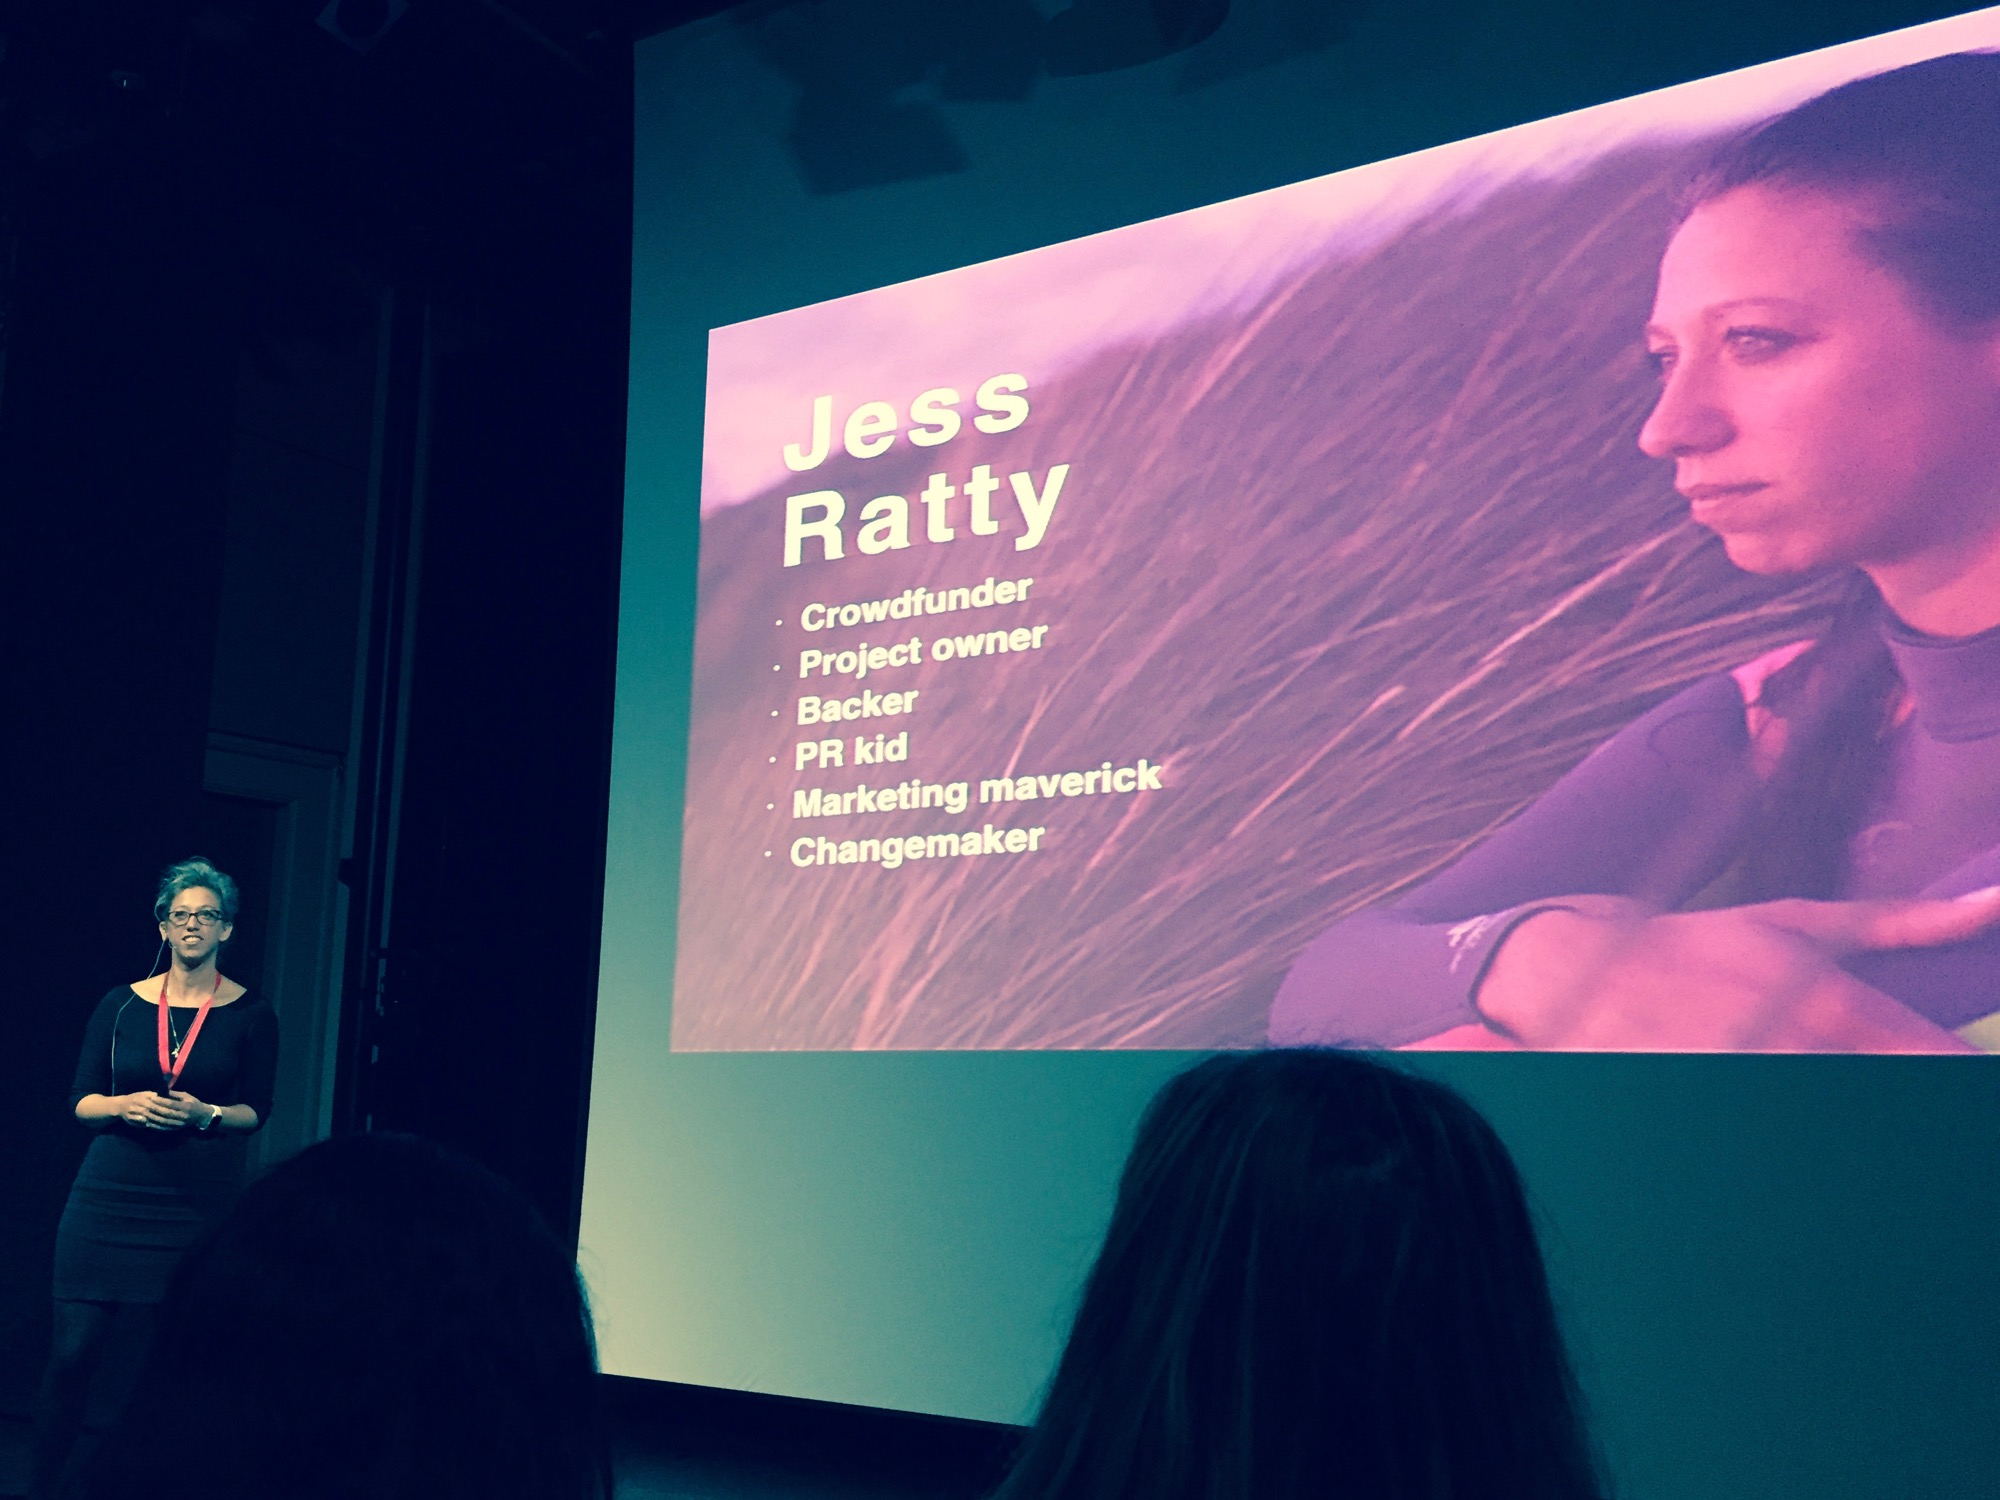 Jess Ratty (Crowdfunder) presentation at Silicon Beach